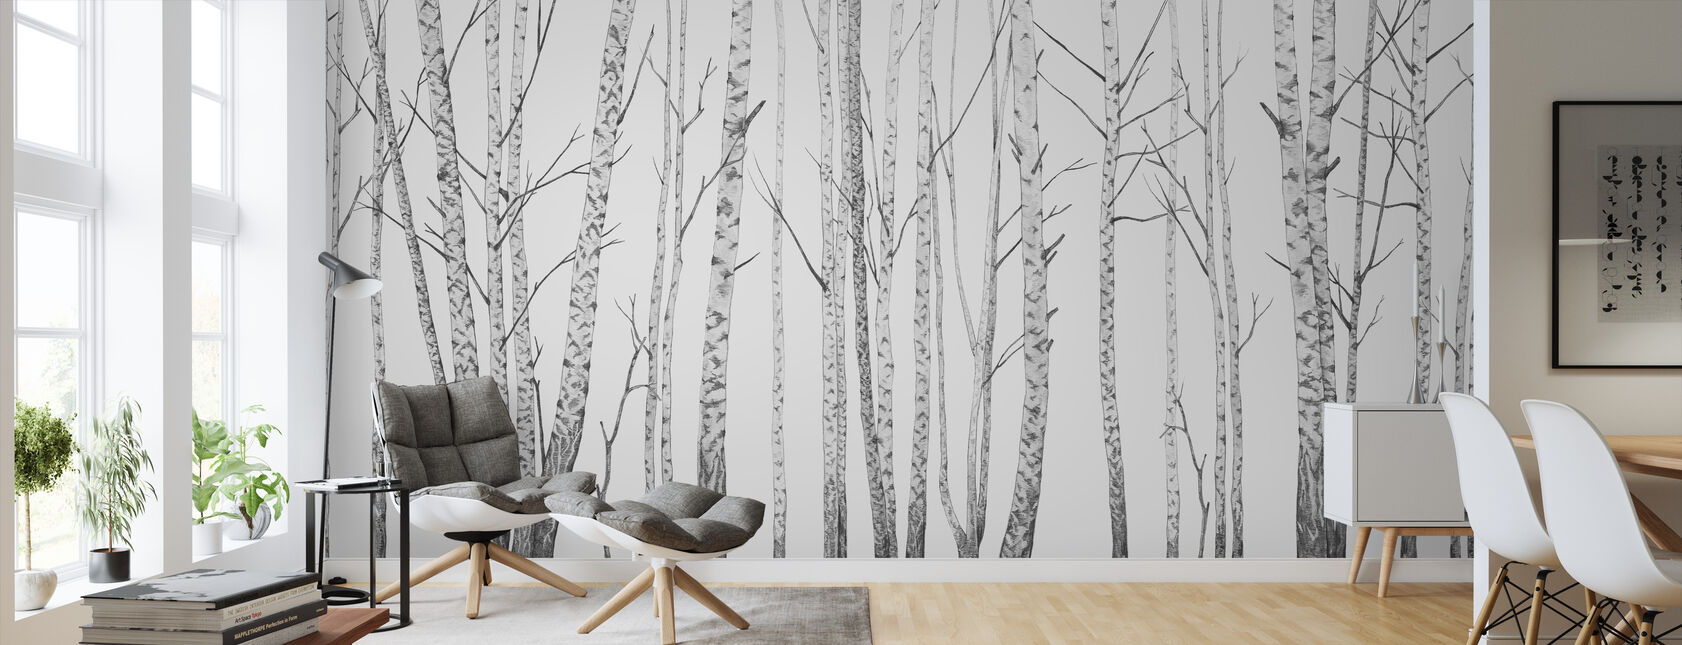 Birch Stems - bw - Wallpaper - Living Room